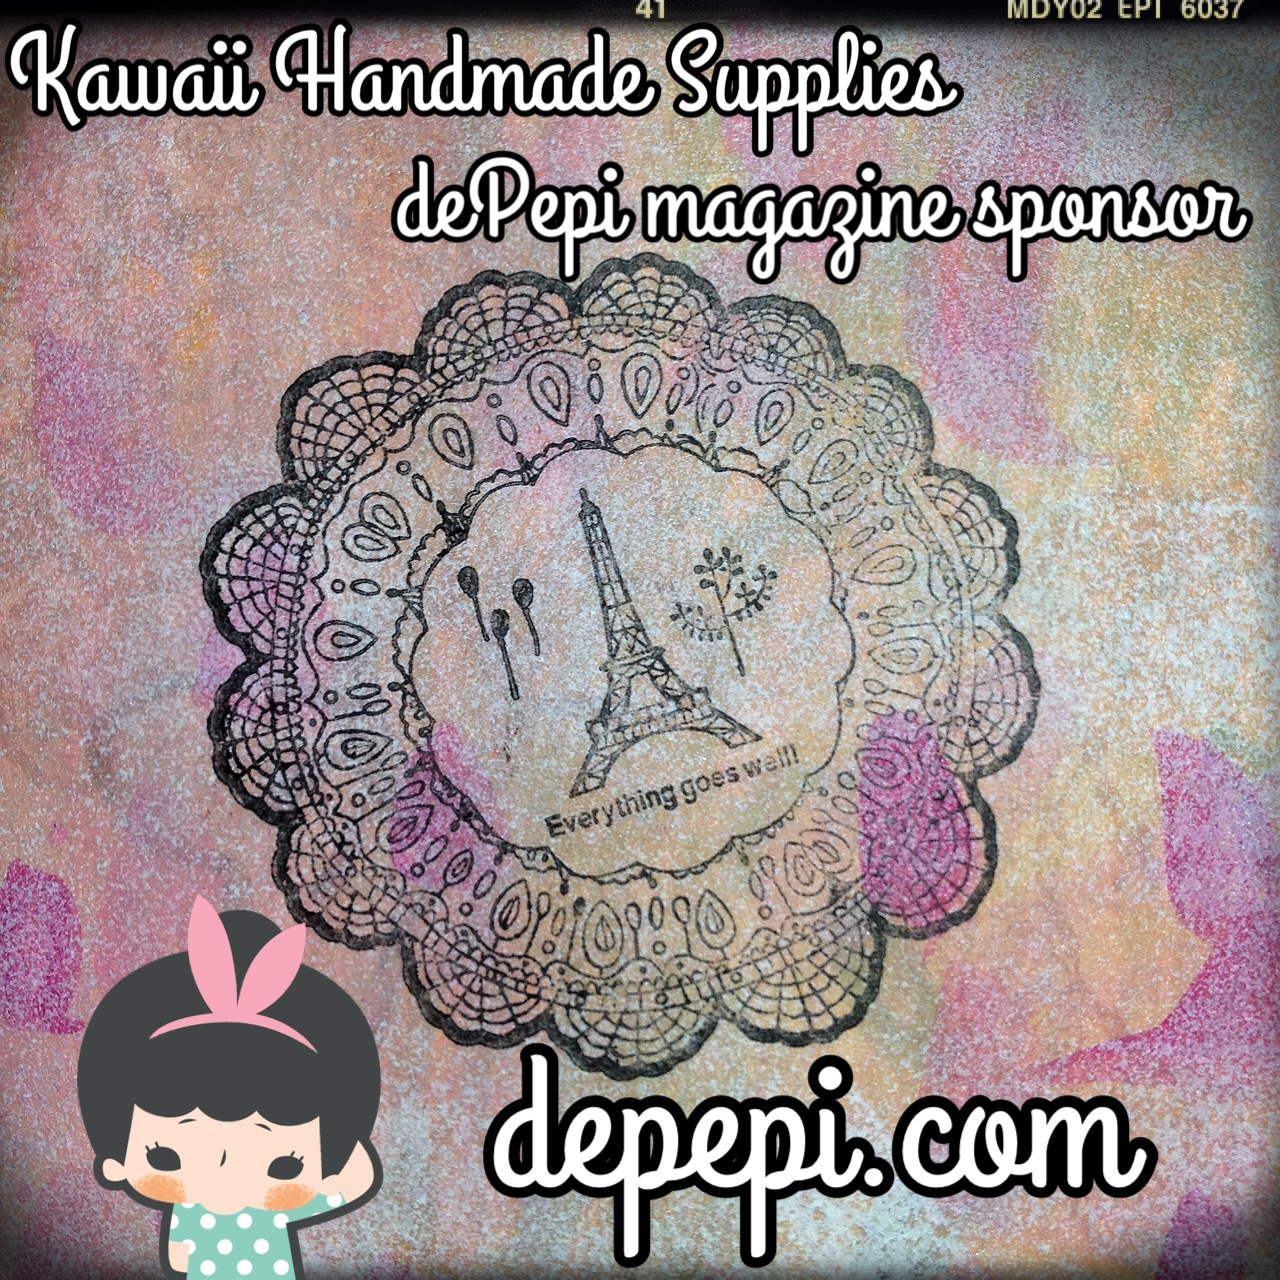 depepi, depepi.com, kawaii, mixed media, mixed media art, journaling,  depepi magazine, stamps, cute